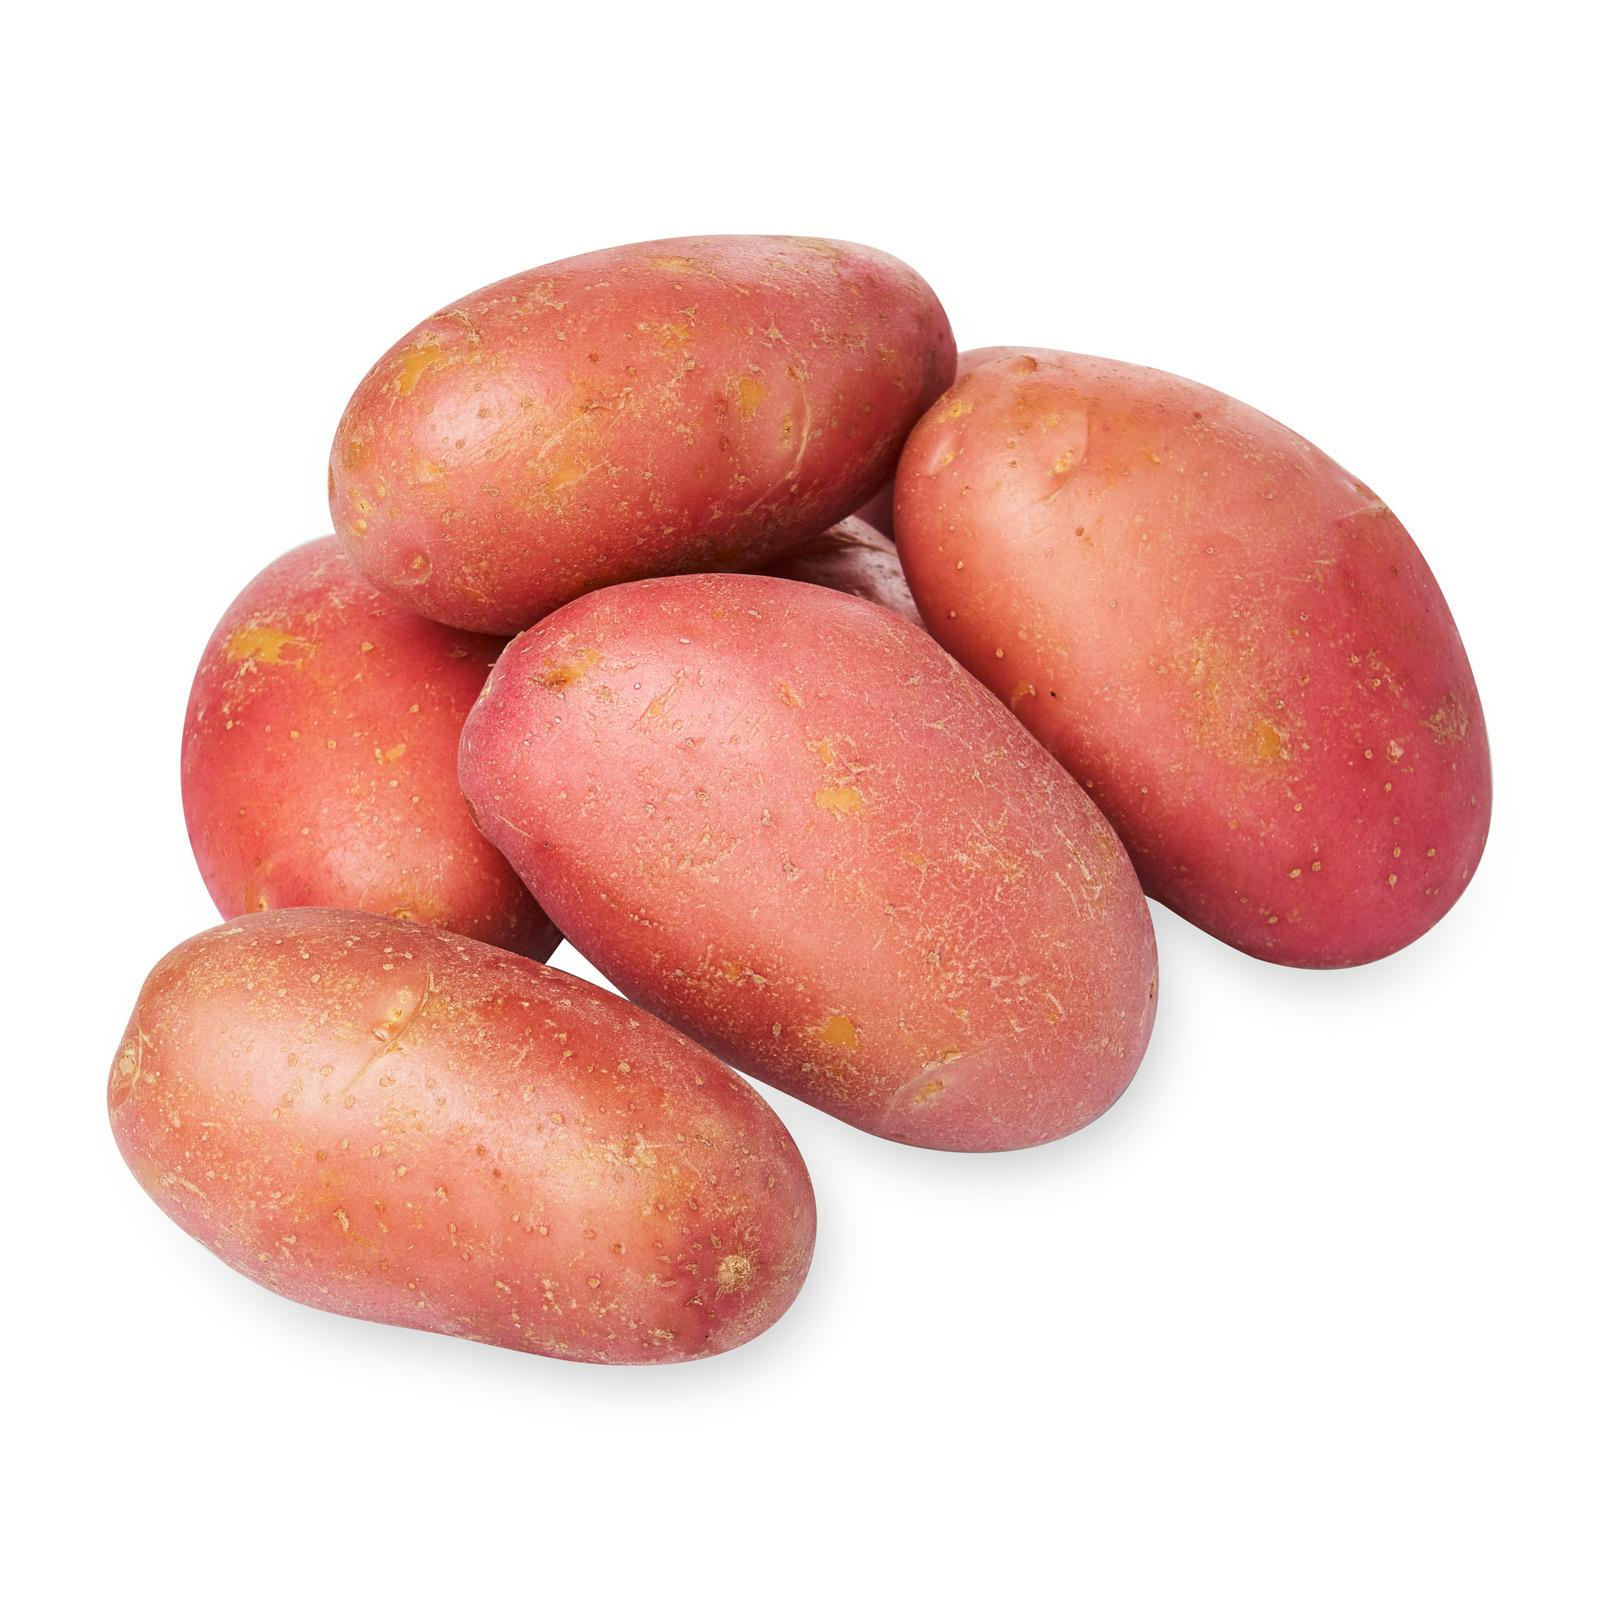 Image of Washed Red Potatoes (2kg)